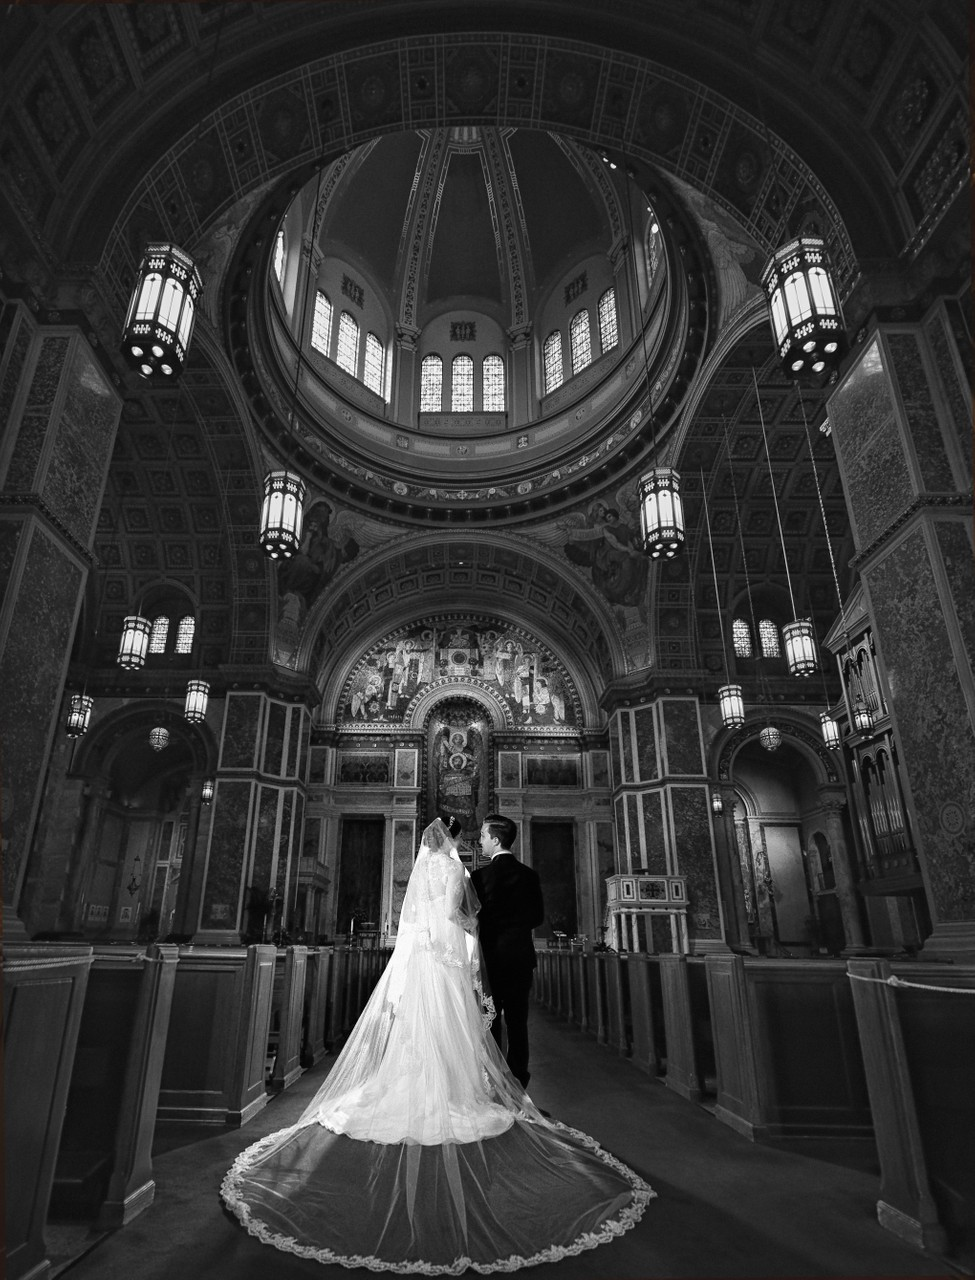 CATHEDRAL OF ST. MATTHEW THE APOSTLE WEDDING Photography